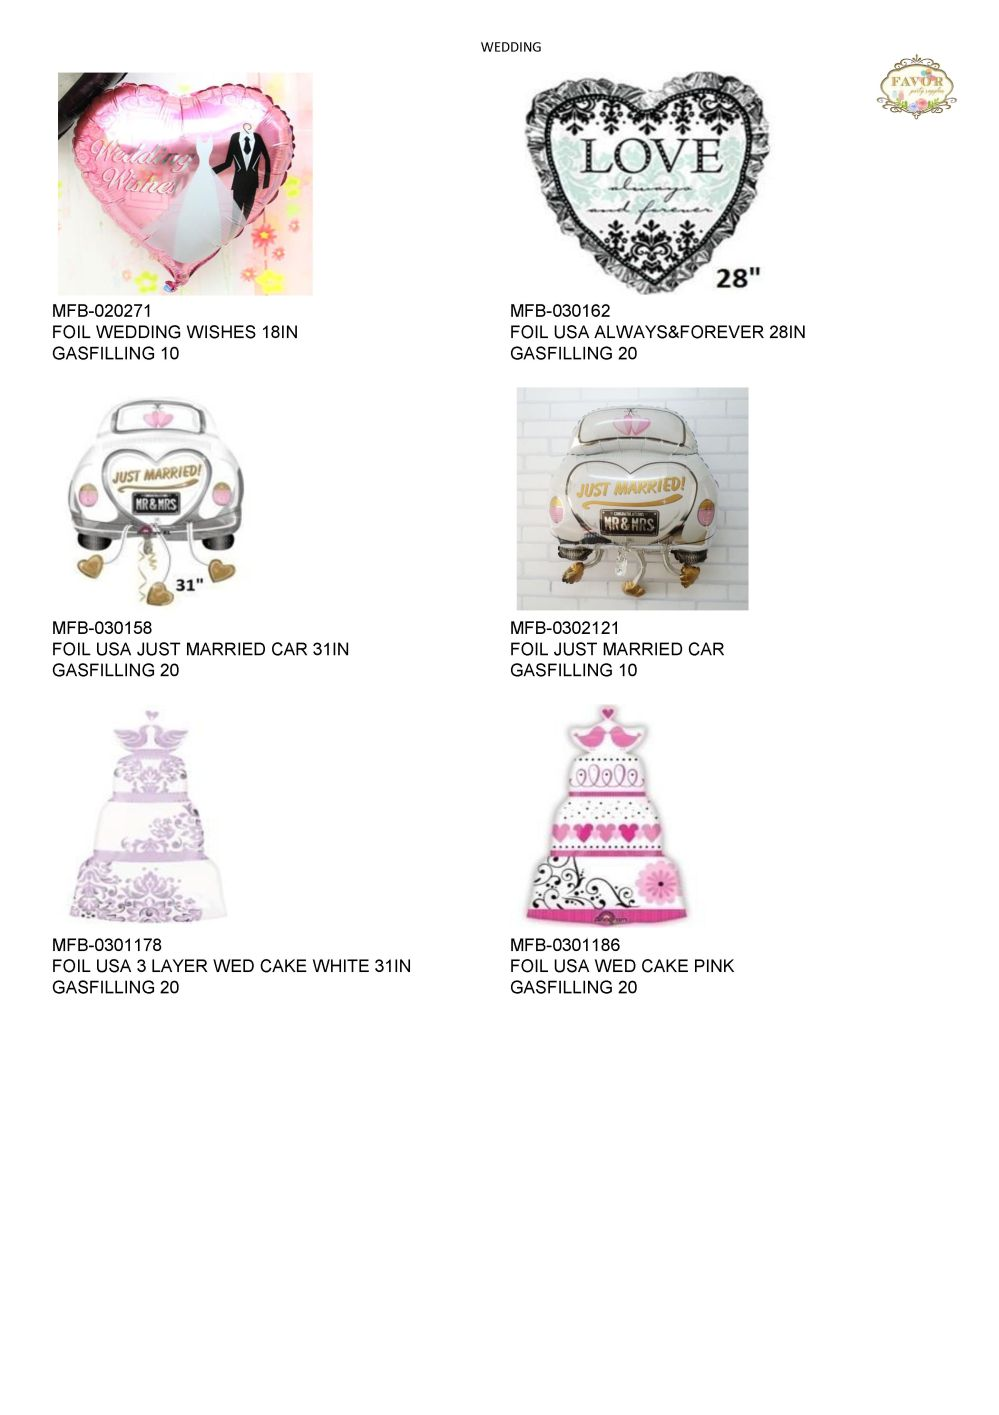 katalog-wedding-bridal-shower_4